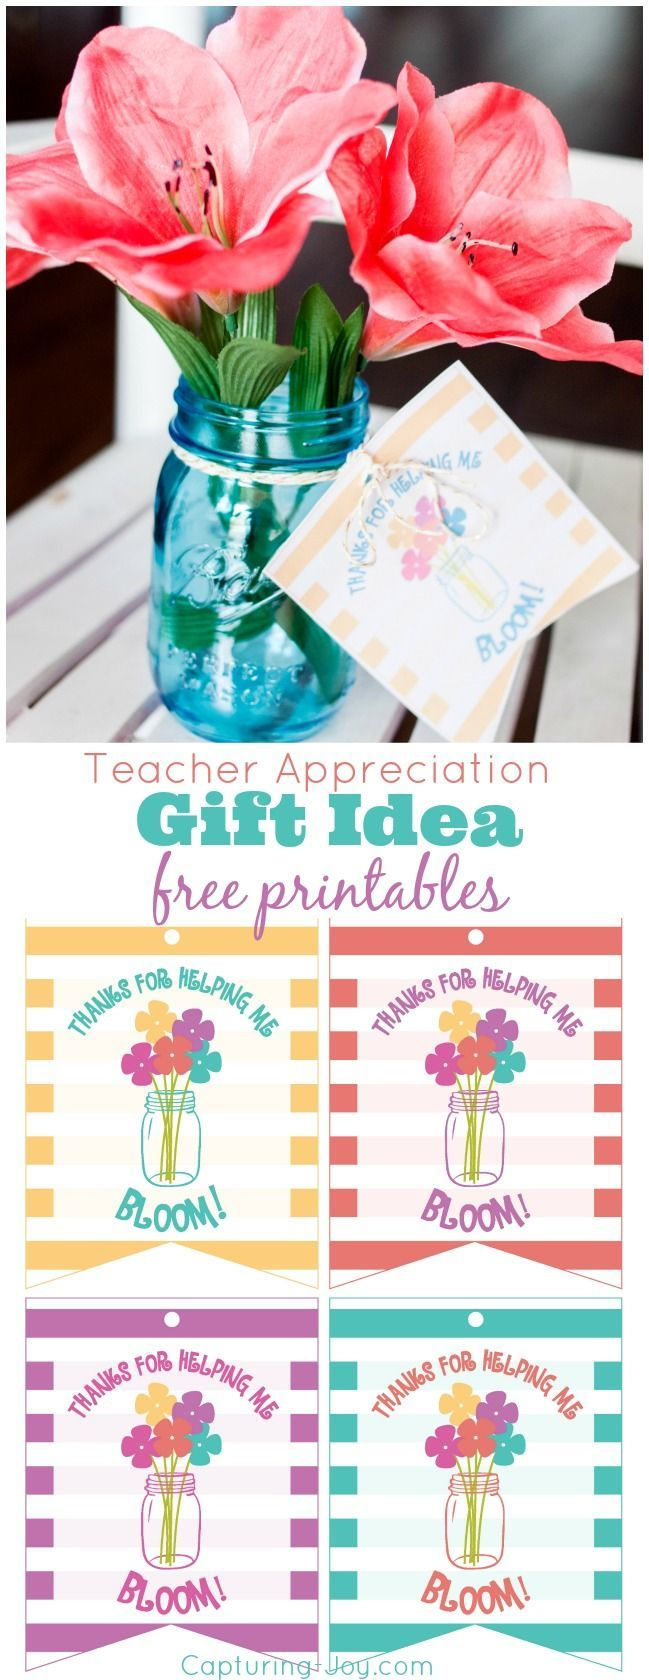 Teacher Appreciation Gift Idea Free Printables in 4 colors. Thank you for helpin...